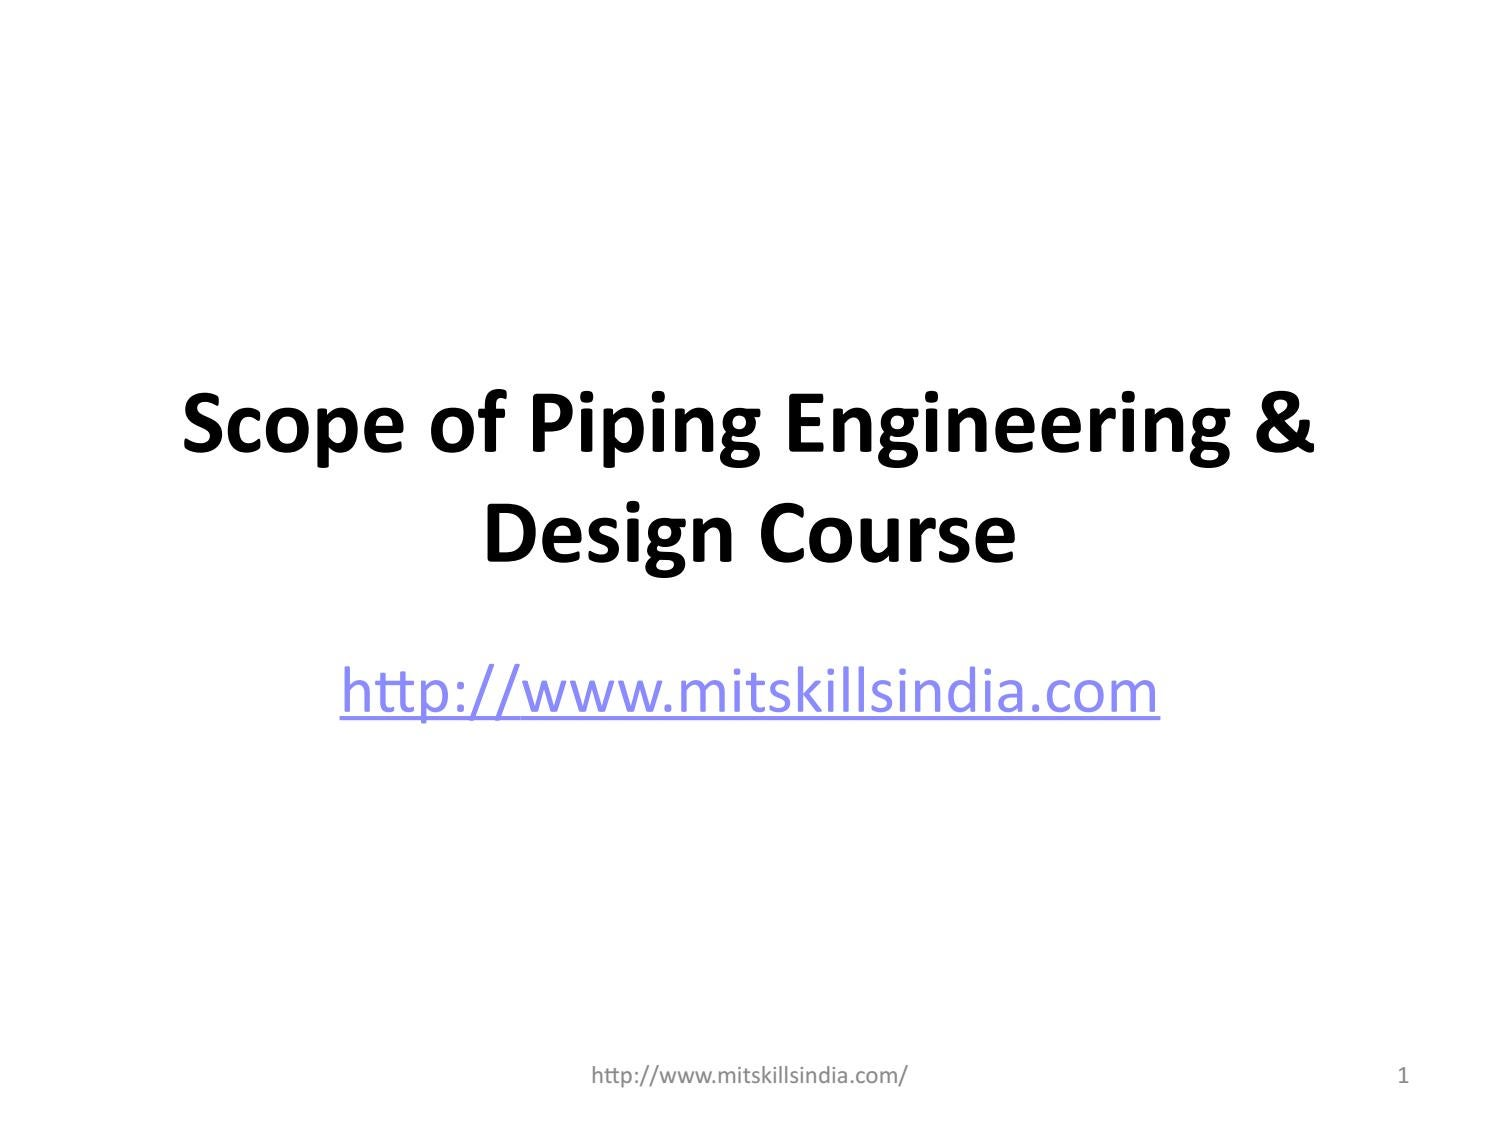 Scope Of Piping Engineering Design Course By Mit Skills Pune Issuu Layout Concepts